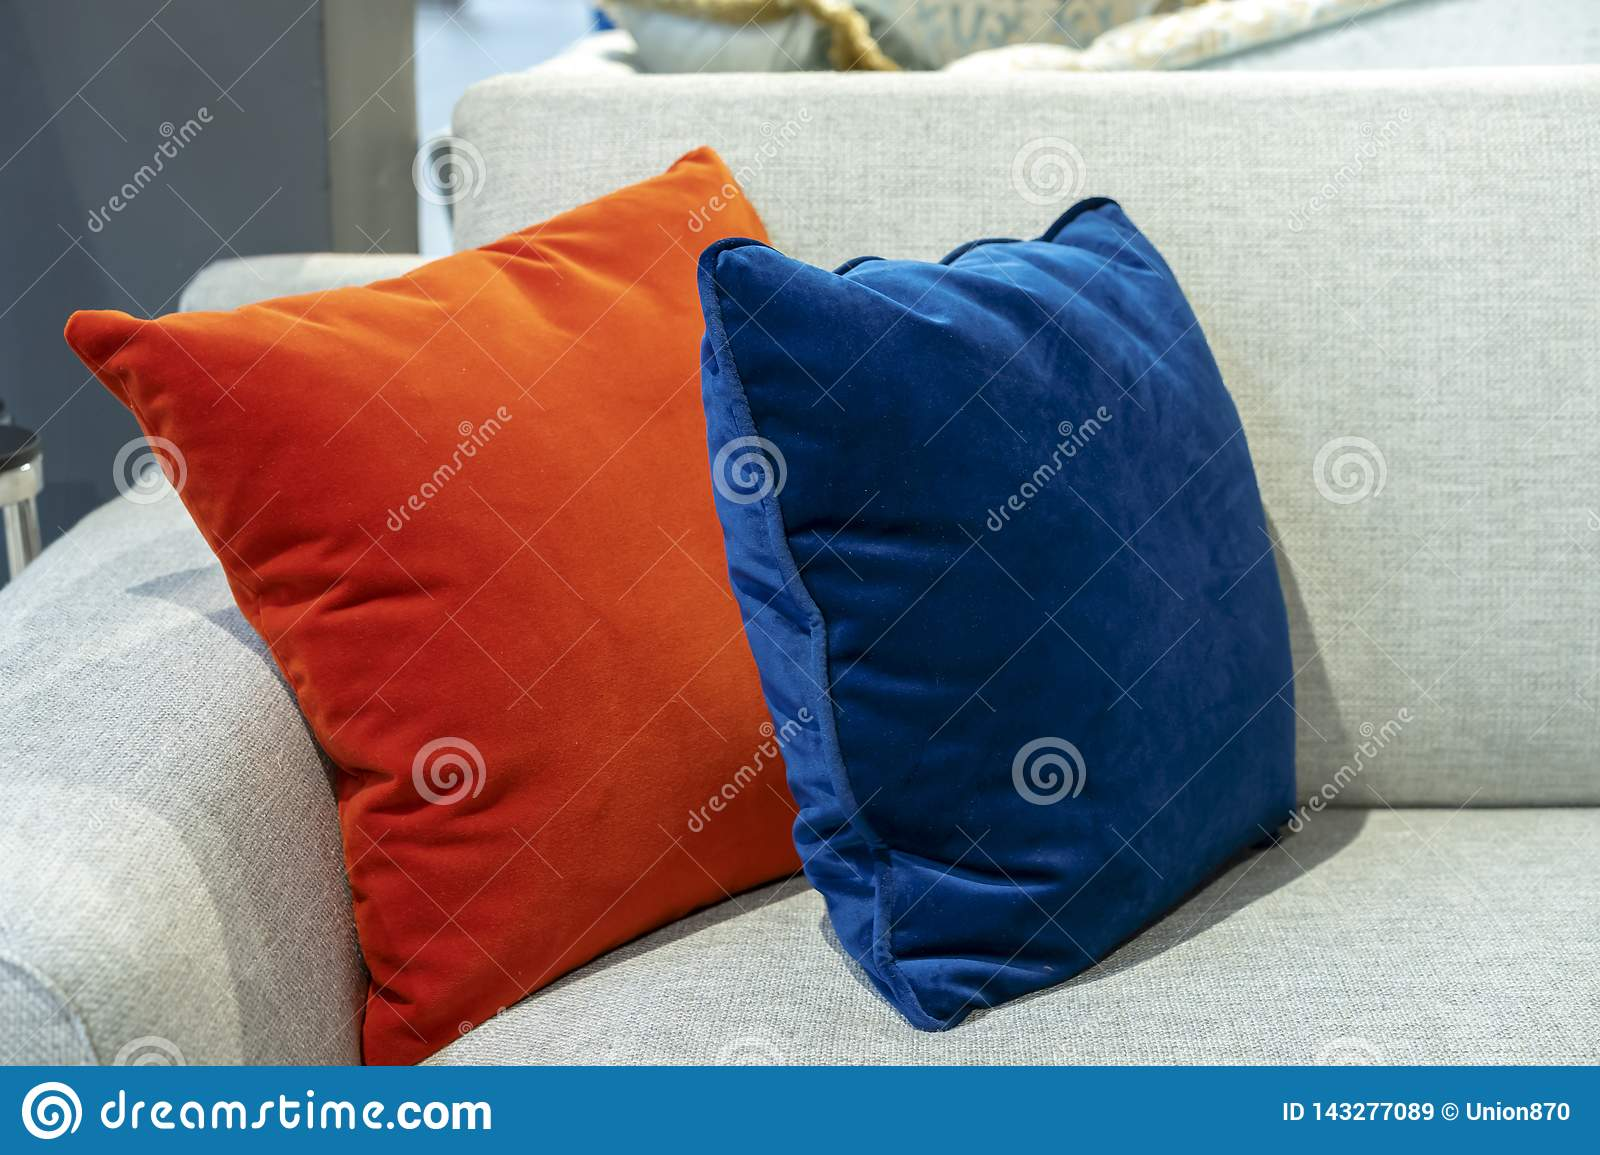 Orange And Blue Decorative Pillows On A Beige Sofa Stock